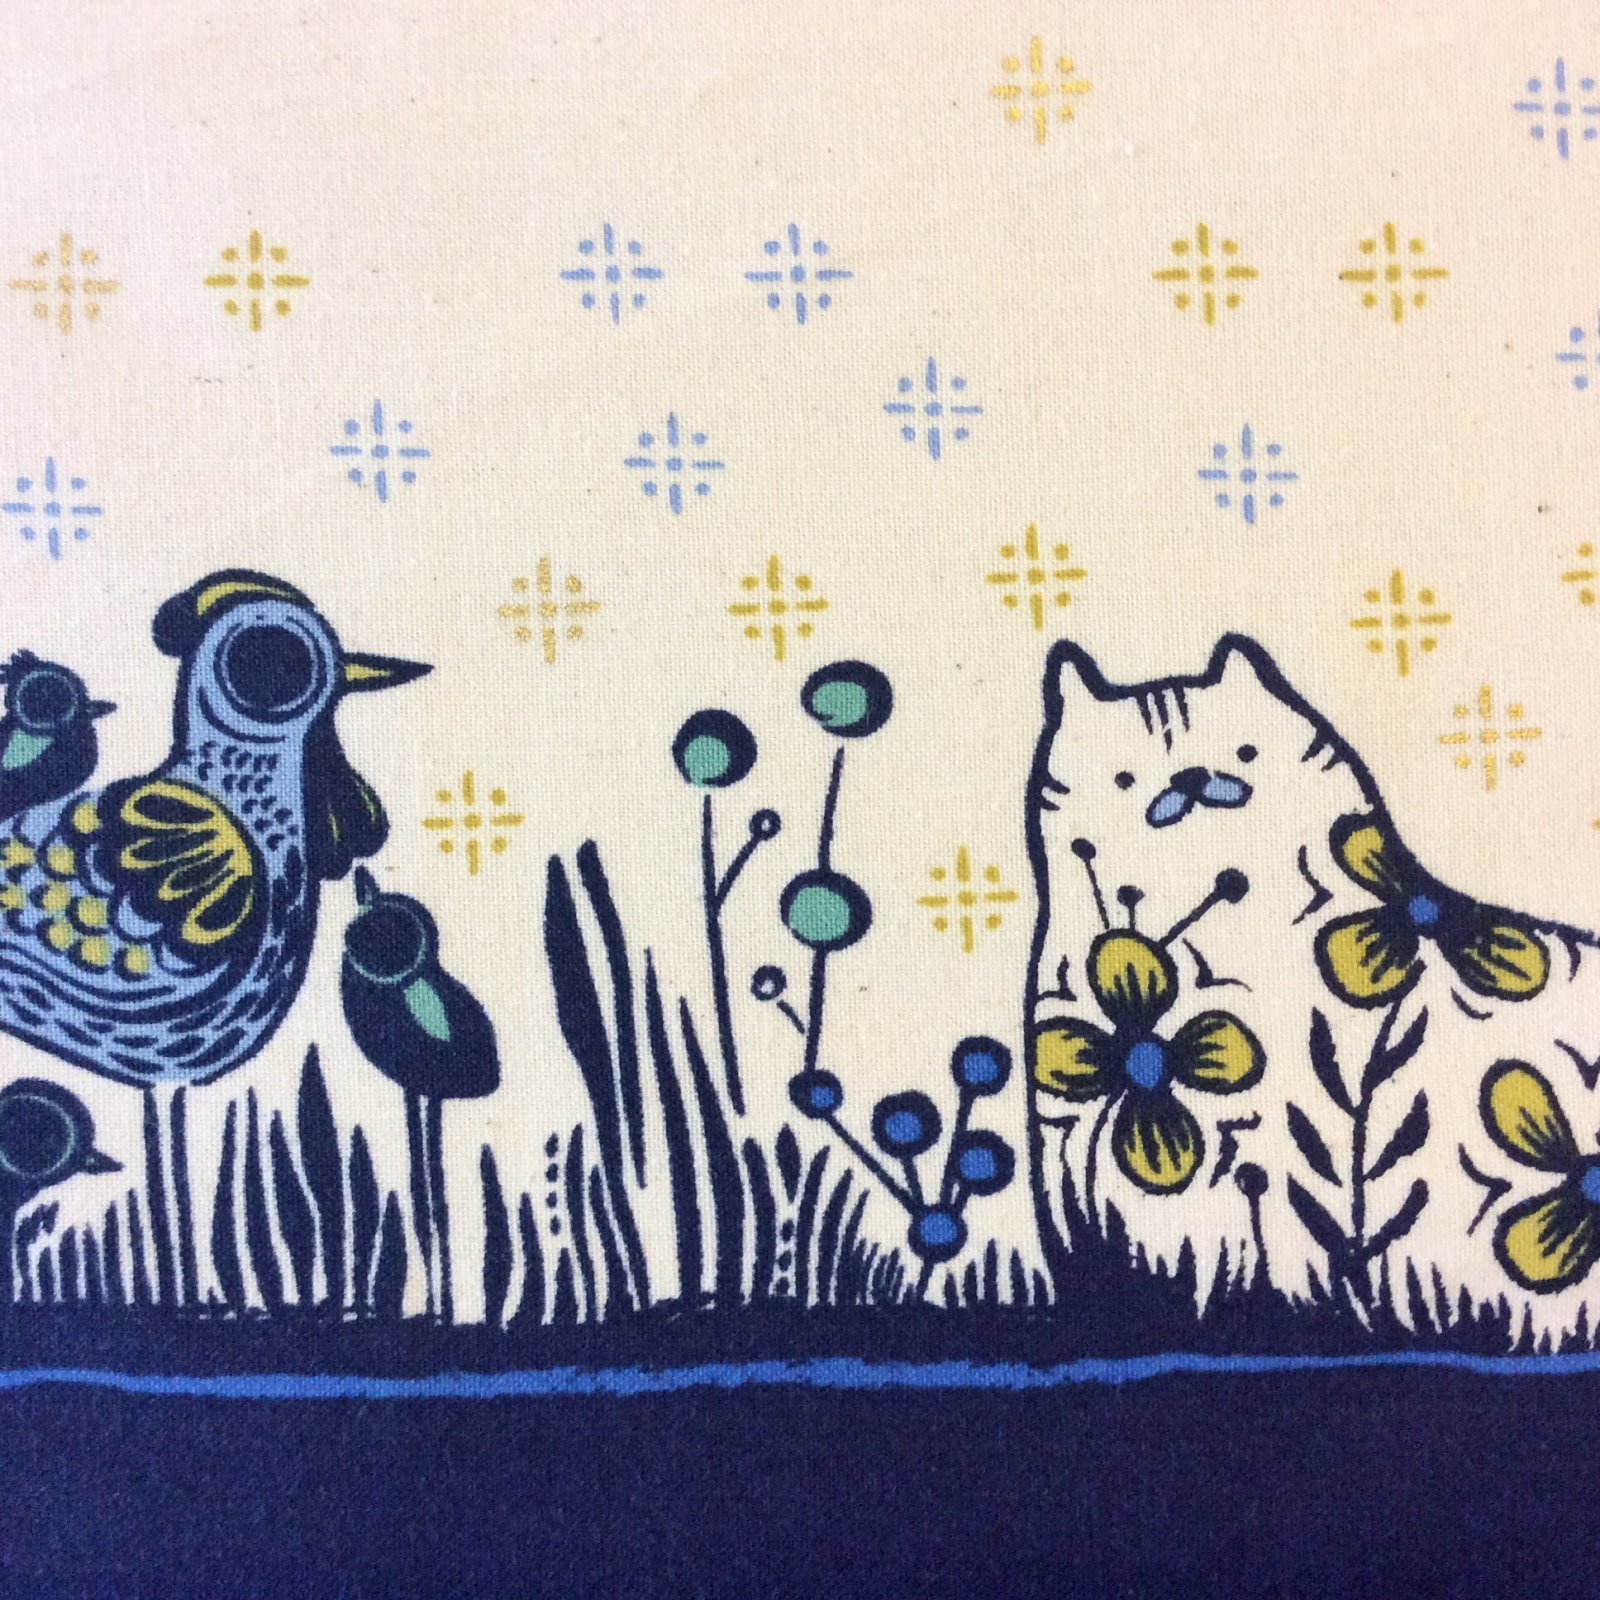 CTN71 Cotton + Steel Garden Border Cat Chicken Sarah Watts Portugal Cotton Quilt Fabric